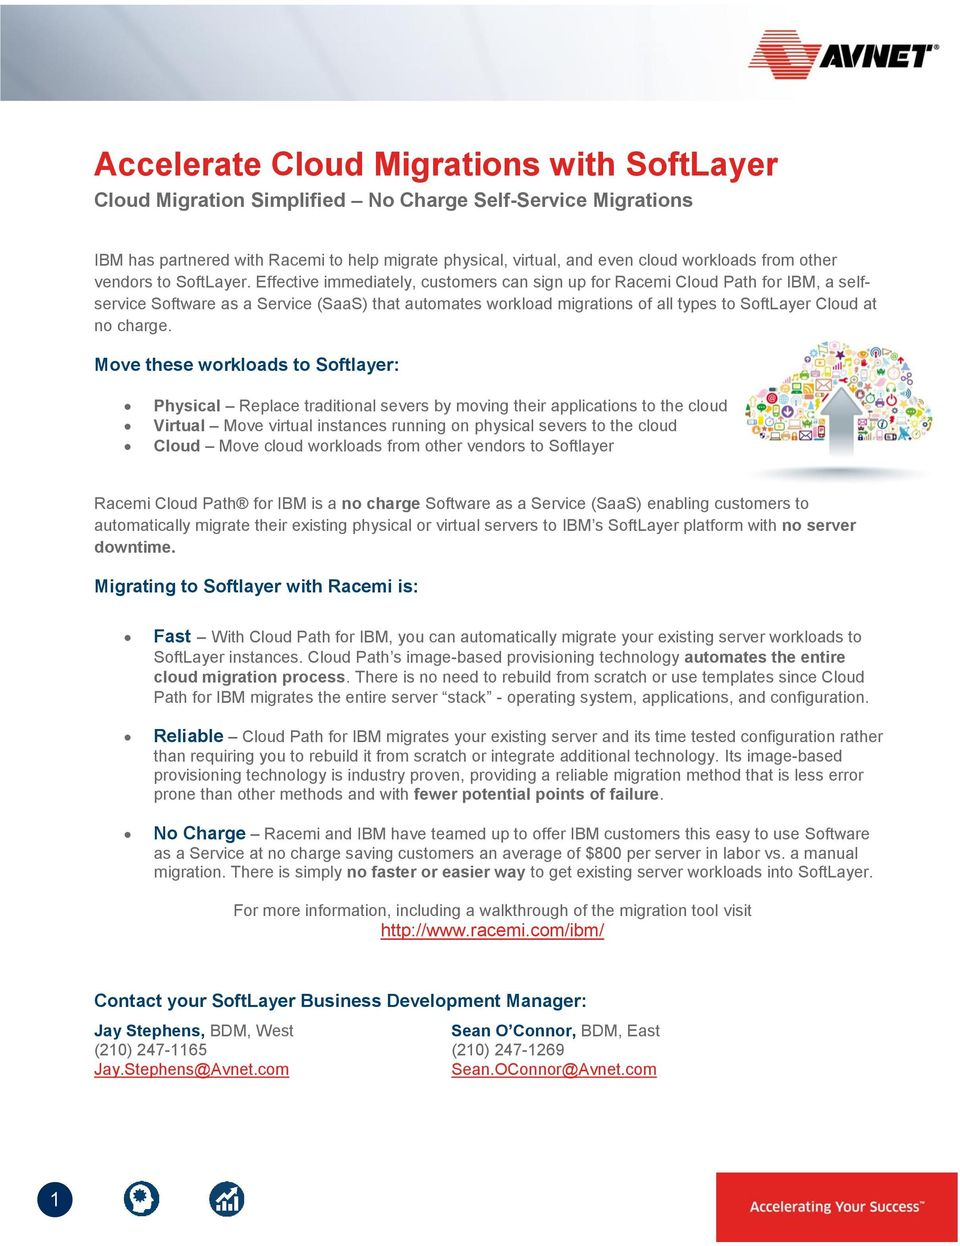 Effective immediately, customers can sign up for Racemi Cloud Path for IBM, a selfservice Software as a Service (SaaS) that automates workload migrations of all types to SoftLayer Cloud at no charge.